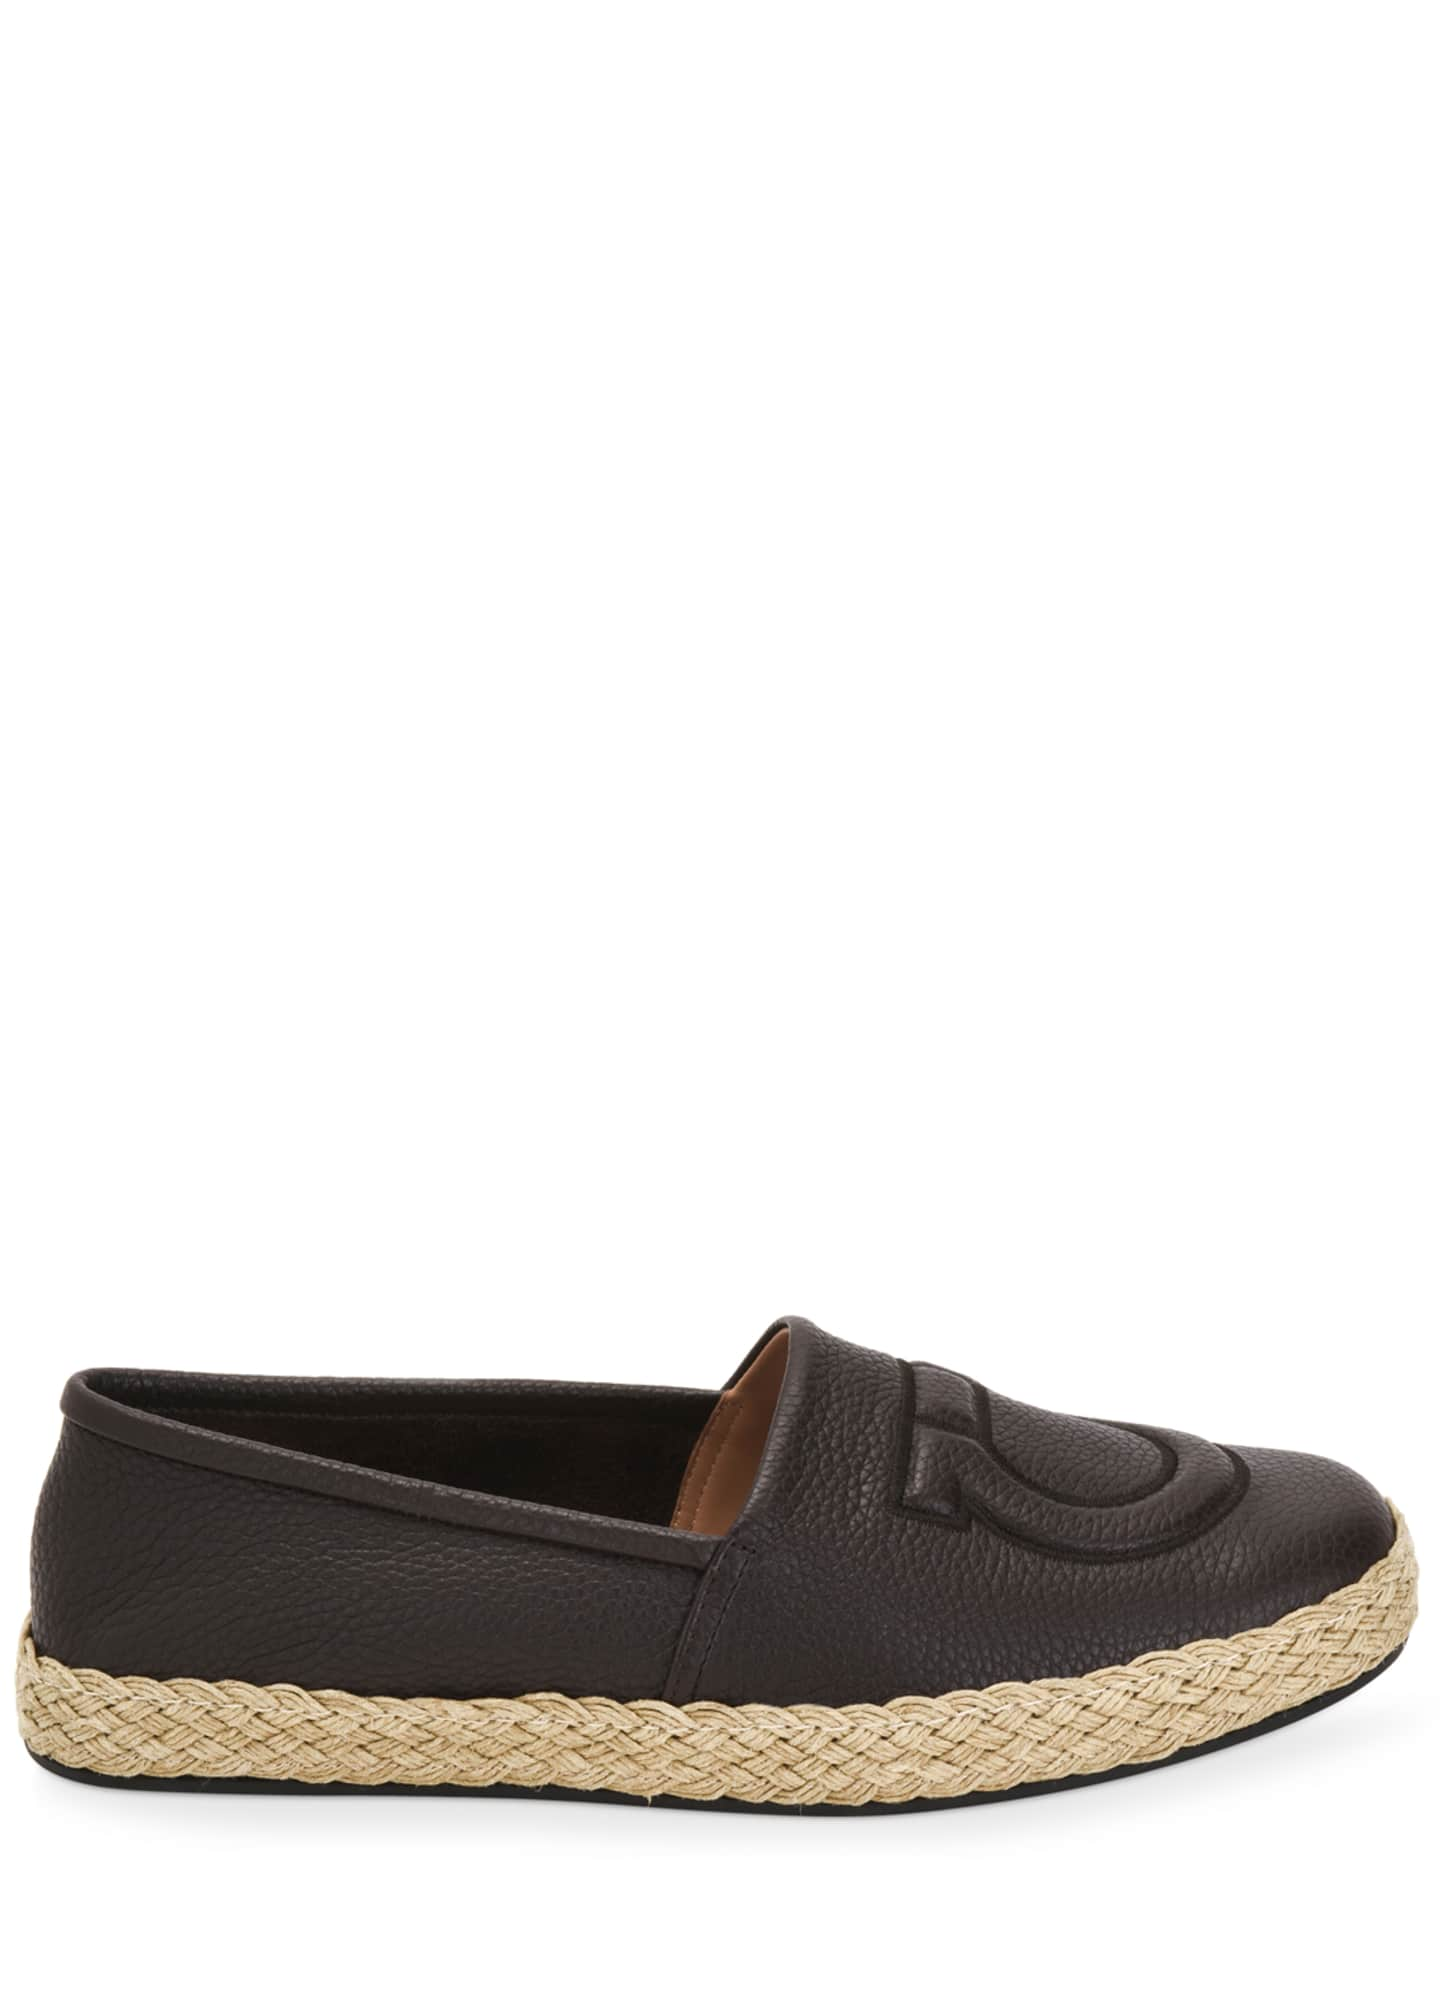 Image 3 of 5: Men's Summer Gancio Leather Espadrilles